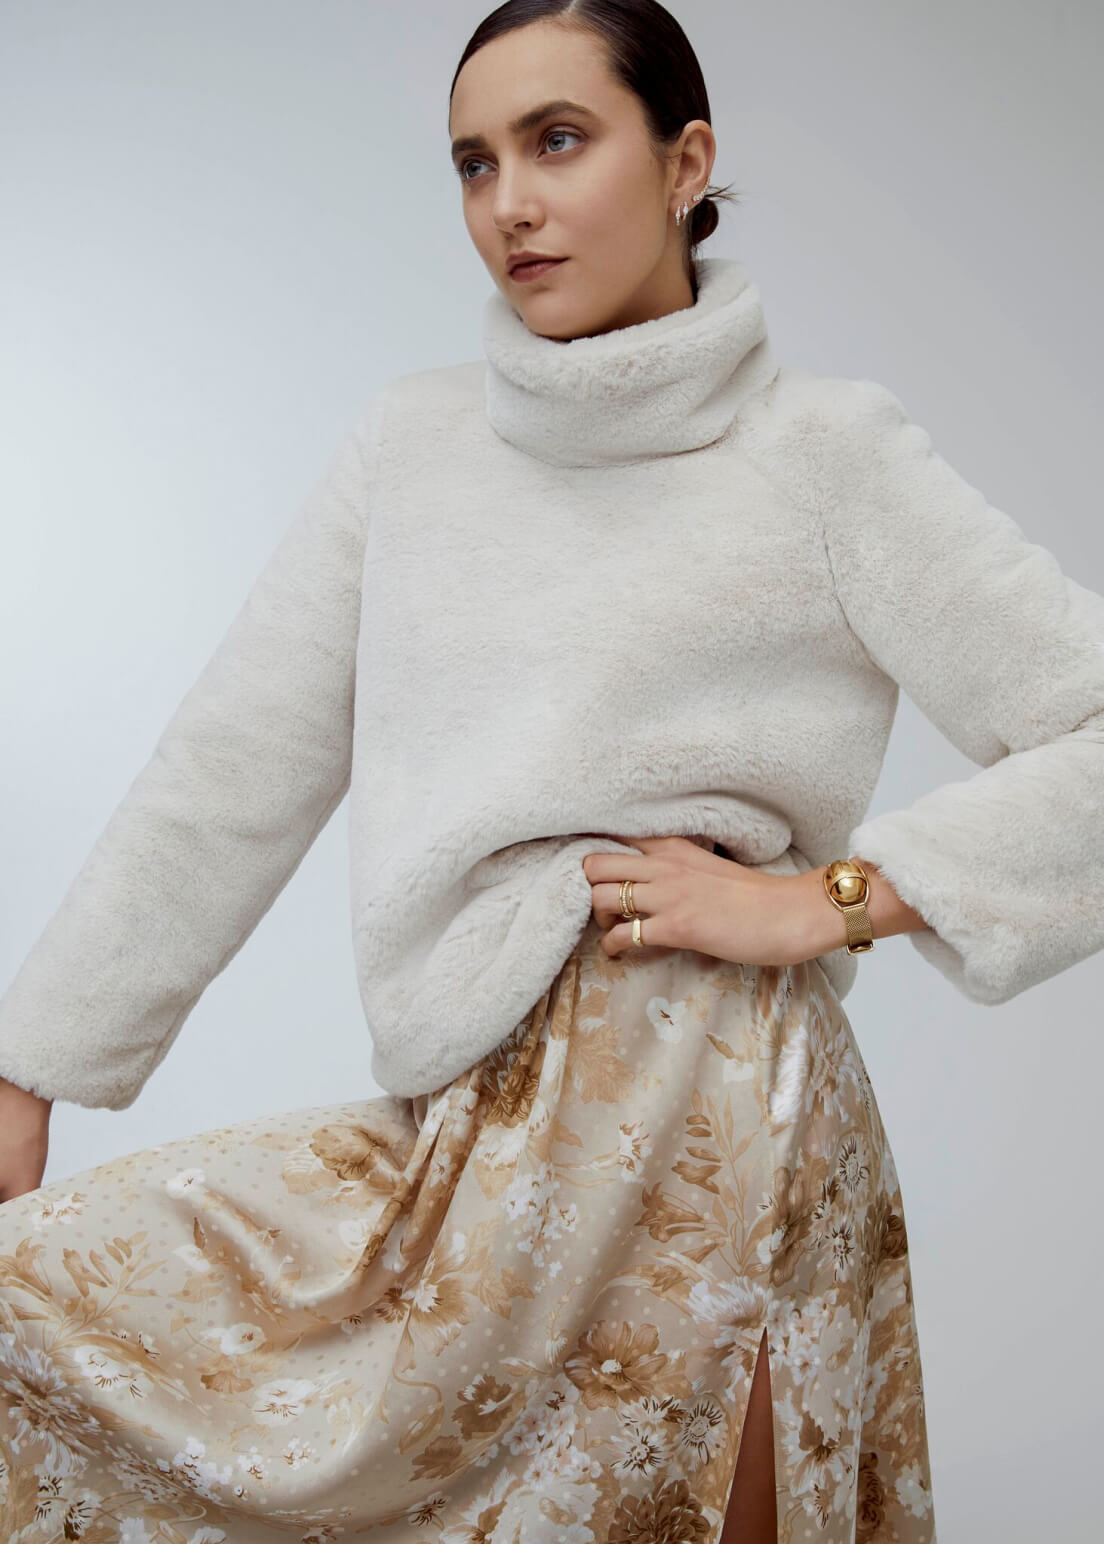 woman posing with a sweater and skirt